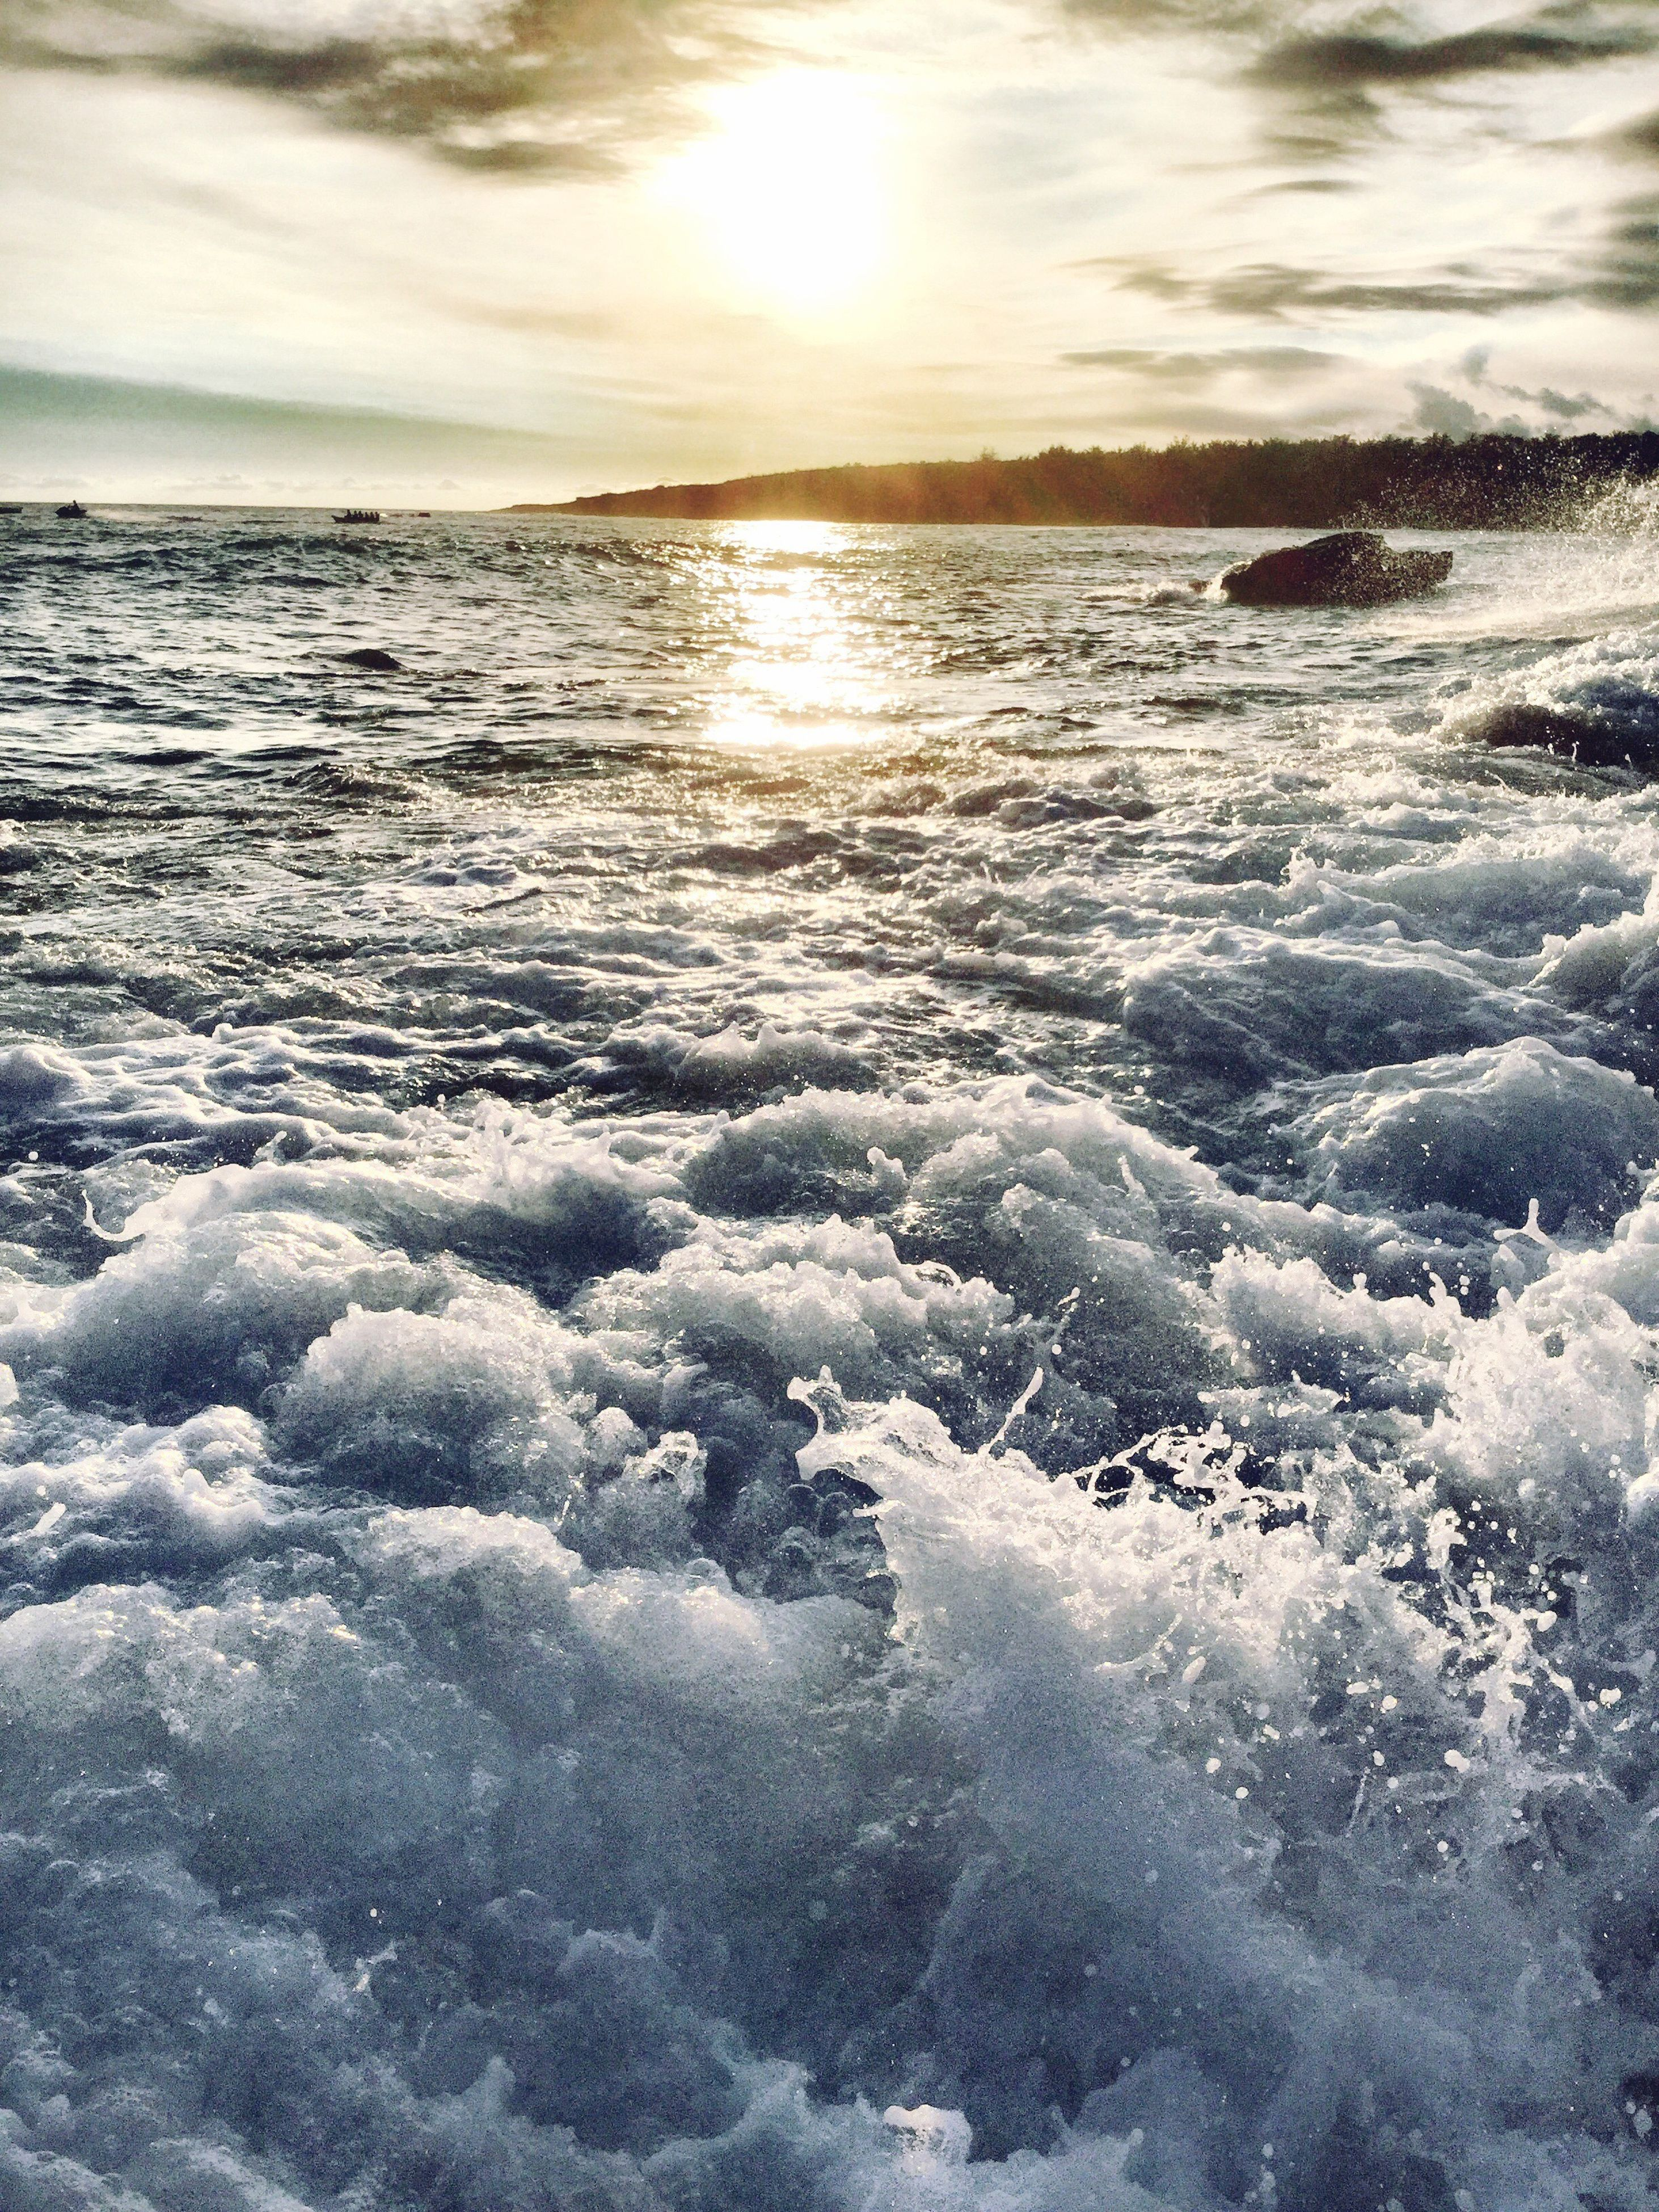 water, sea, scenics, sunset, cold temperature, winter, beauty in nature, tranquil scene, nature, horizon over water, tranquility, snow, surf, frozen, idyllic, sky, sun, shore, cloud, seascape, outdoors, cloud - sky, majestic, ocean, non-urban scene, wave, remote